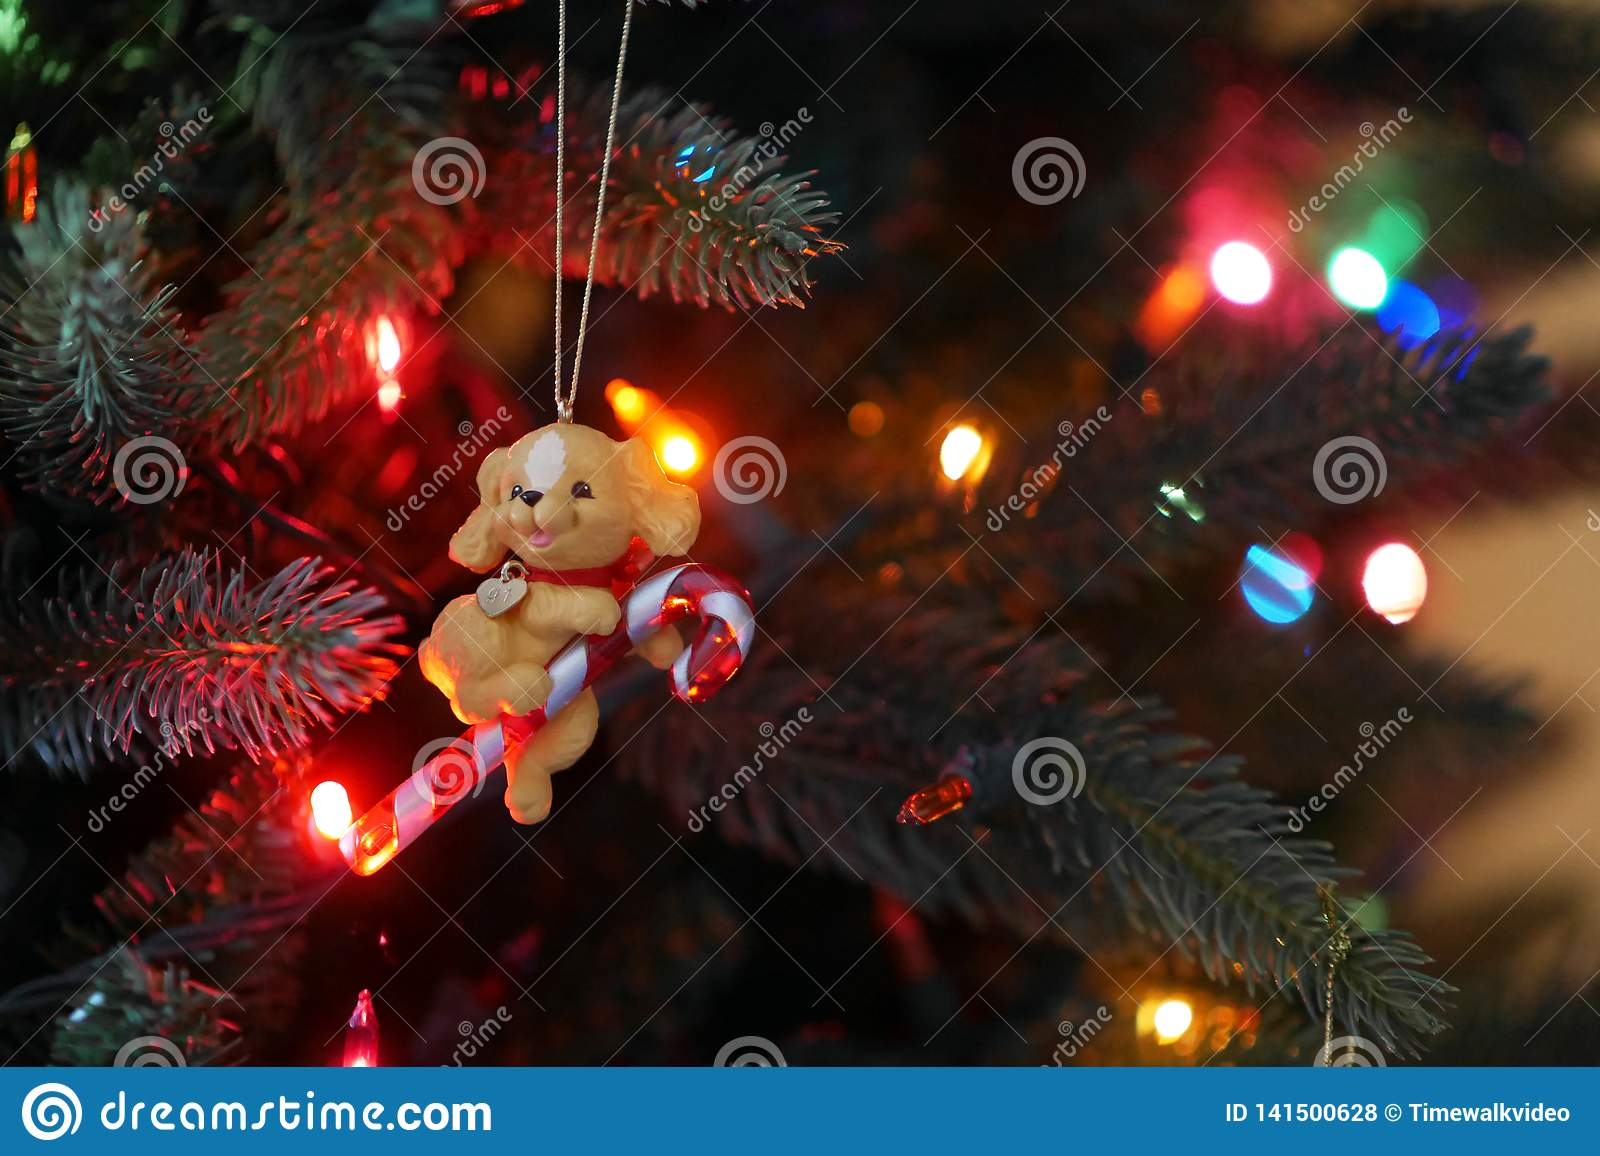 Puppy with candy cane - Retro Christmas tree ornament